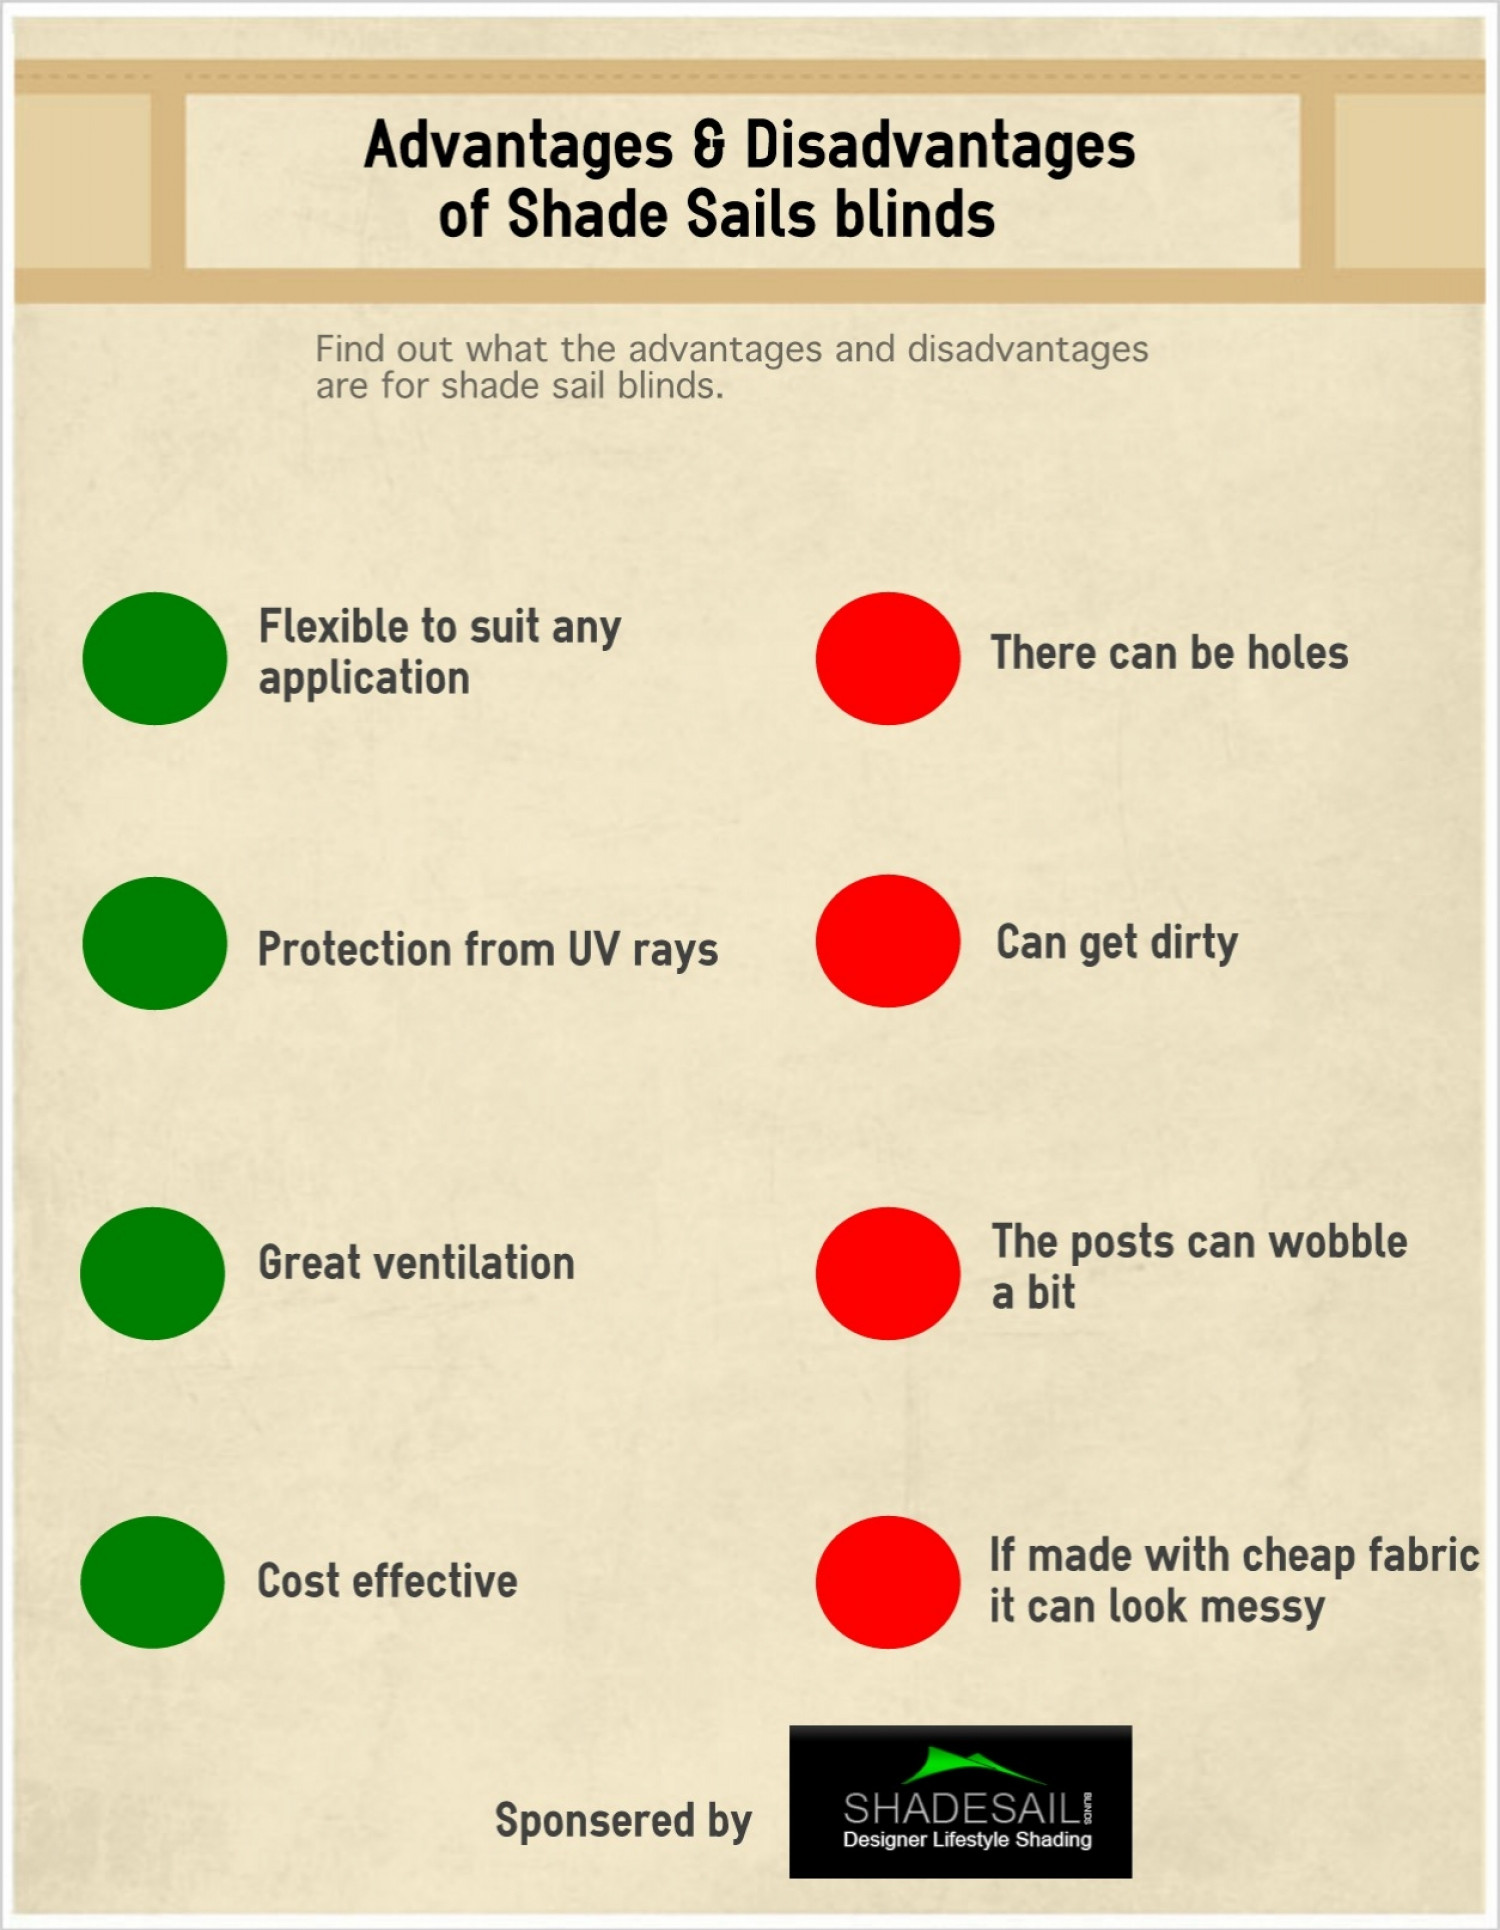 Advantages & Disadvantages of shade sails blinds Infographic